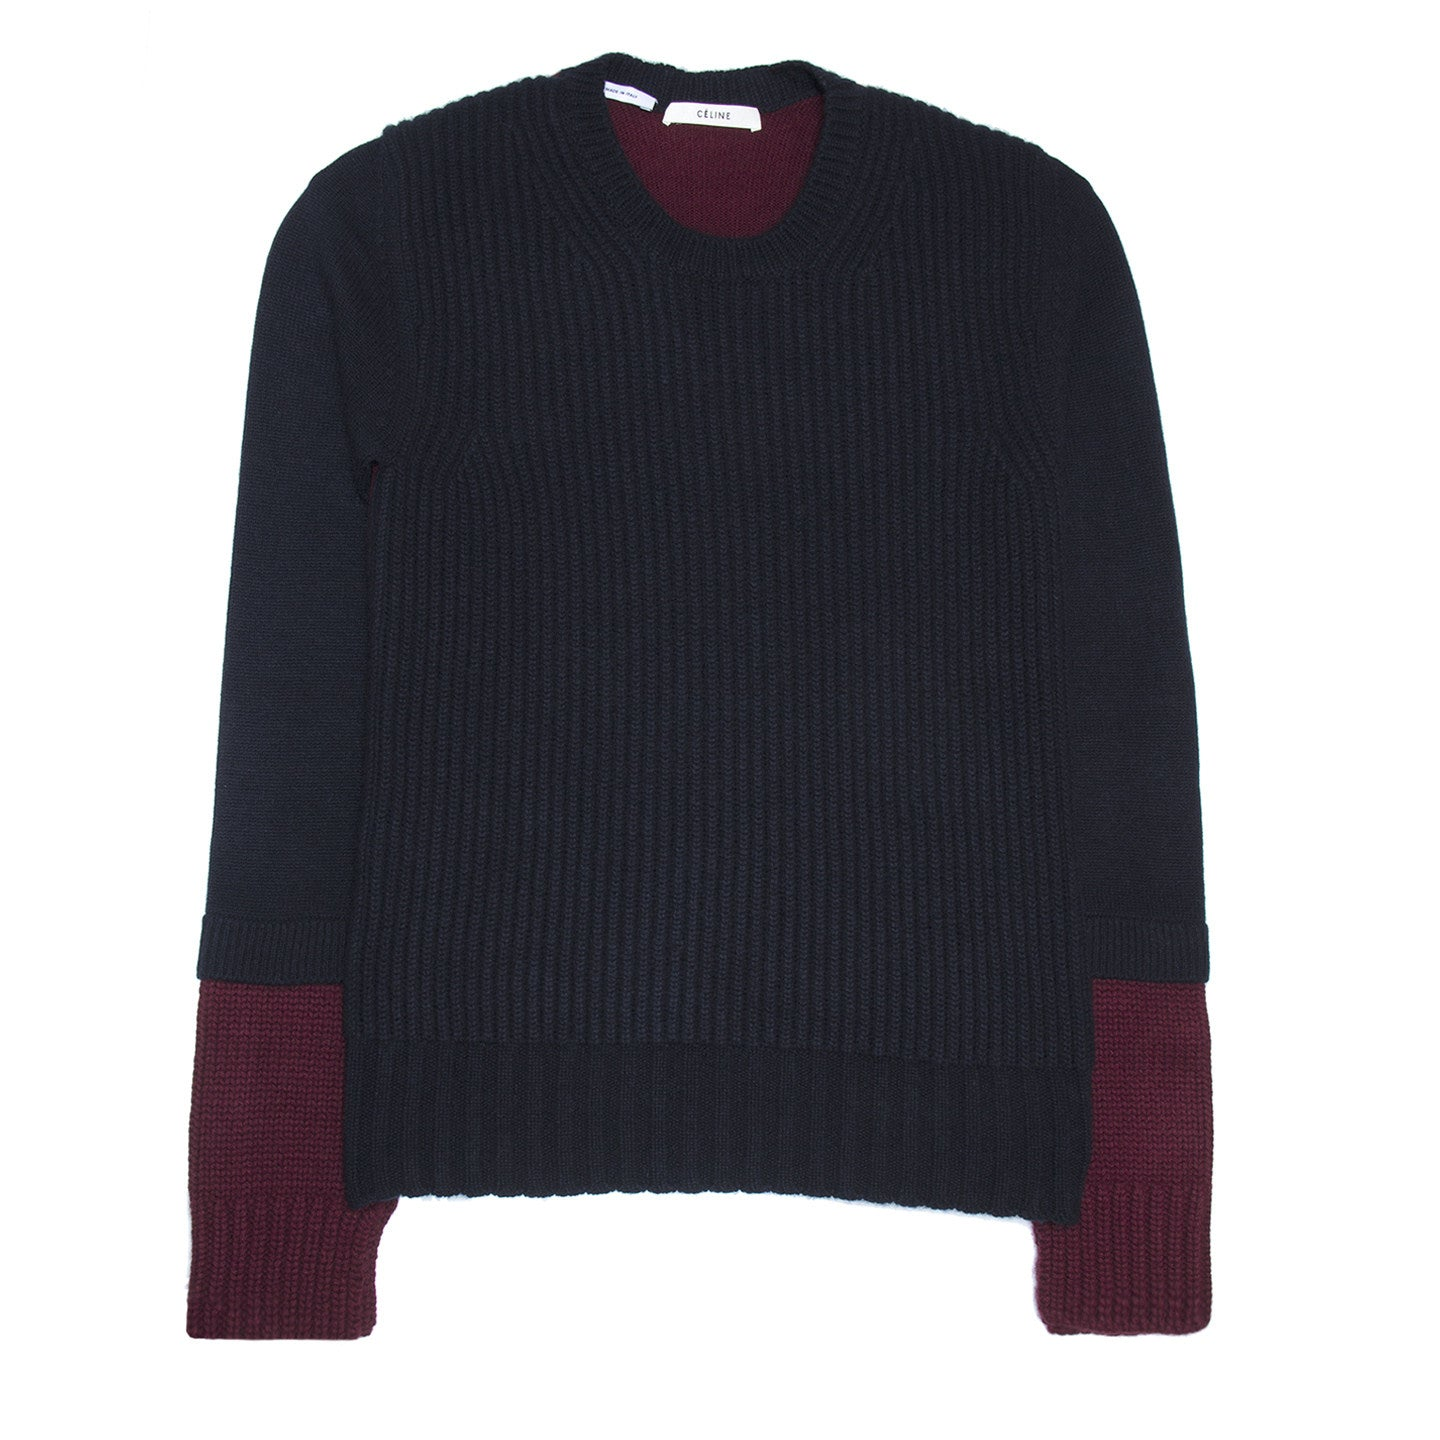 Find an authentic preowned Celine Navy & Burgundy Sweater, size M at BunnyJack, where a portion of every sale goes to charity.